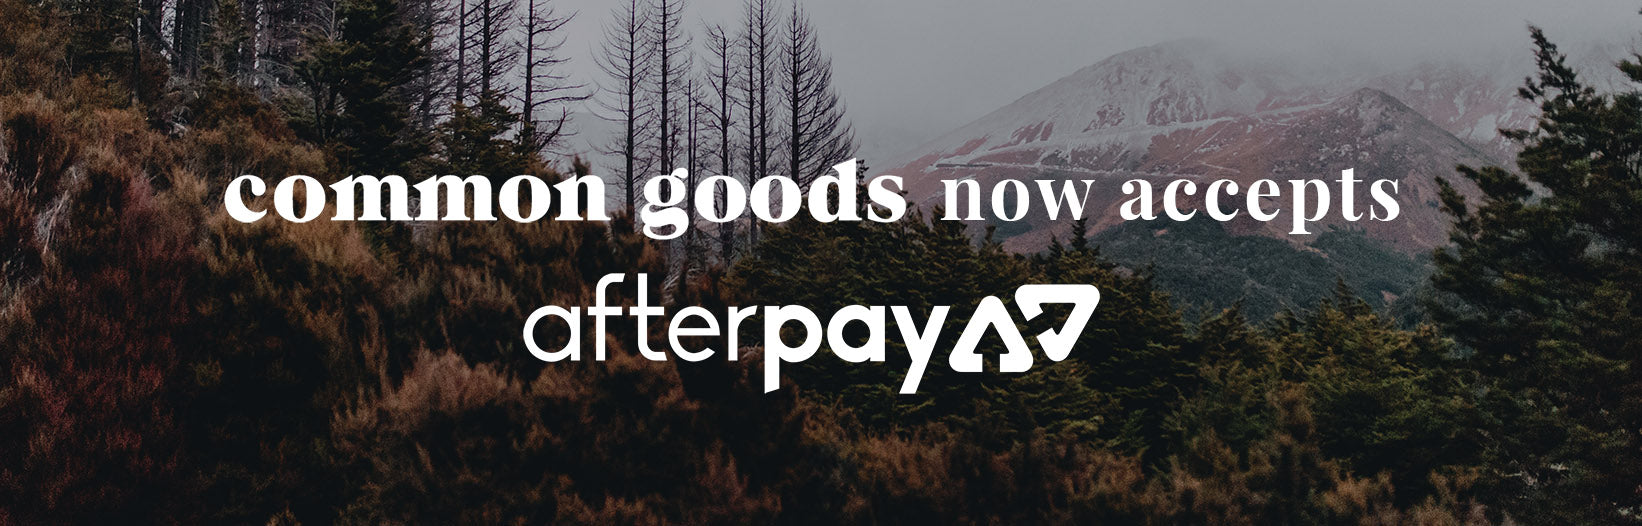 Afterpay Common Goods banner